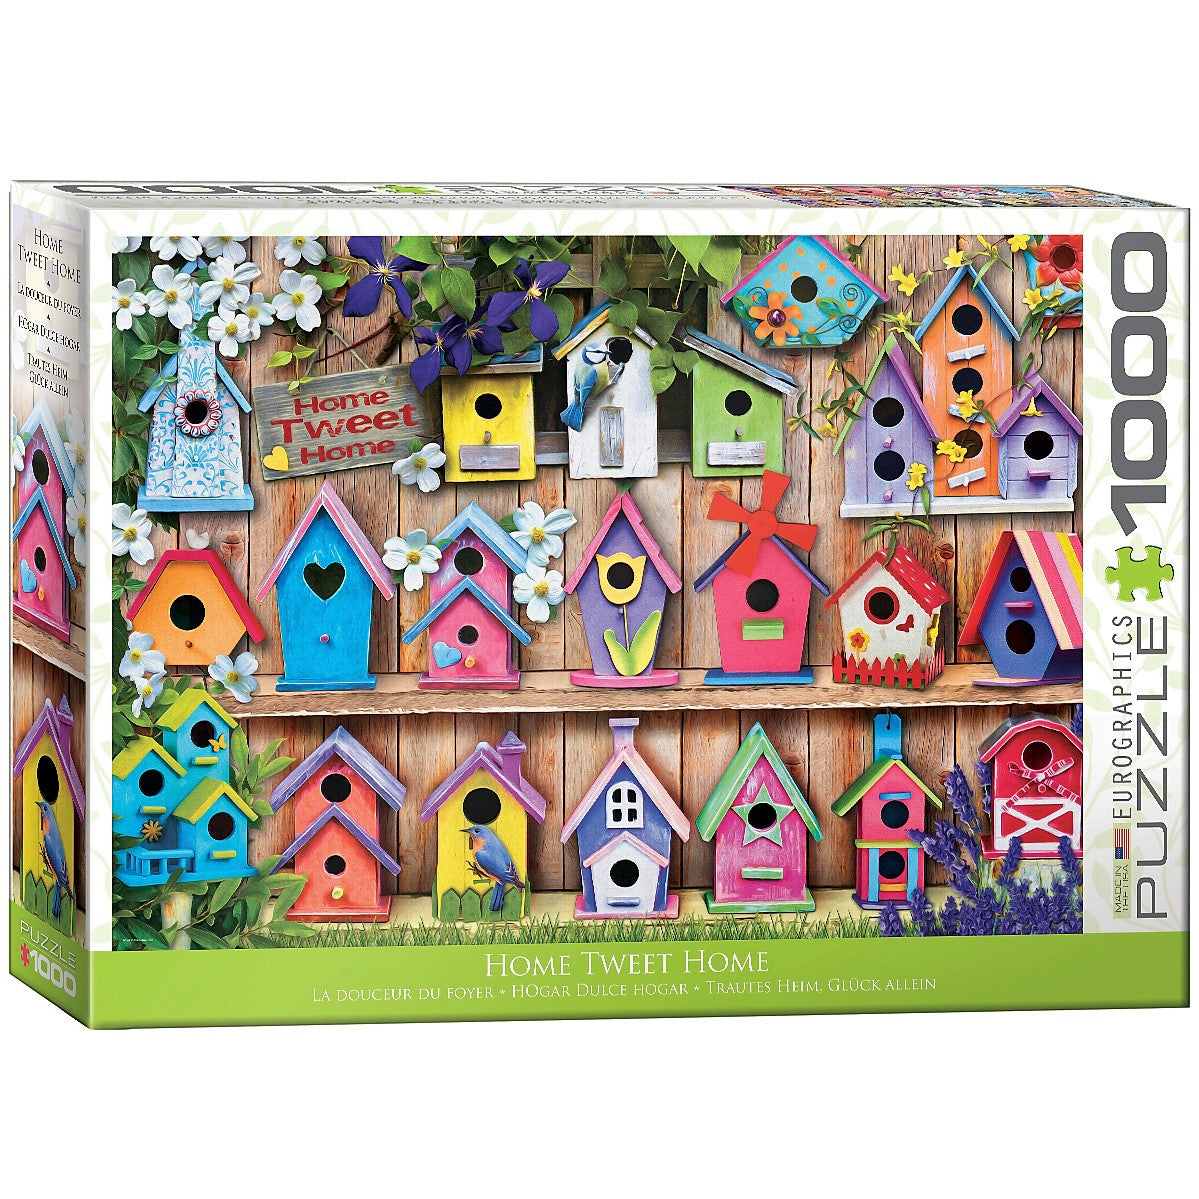 1000 Piece Home Tweet Home Puzzle